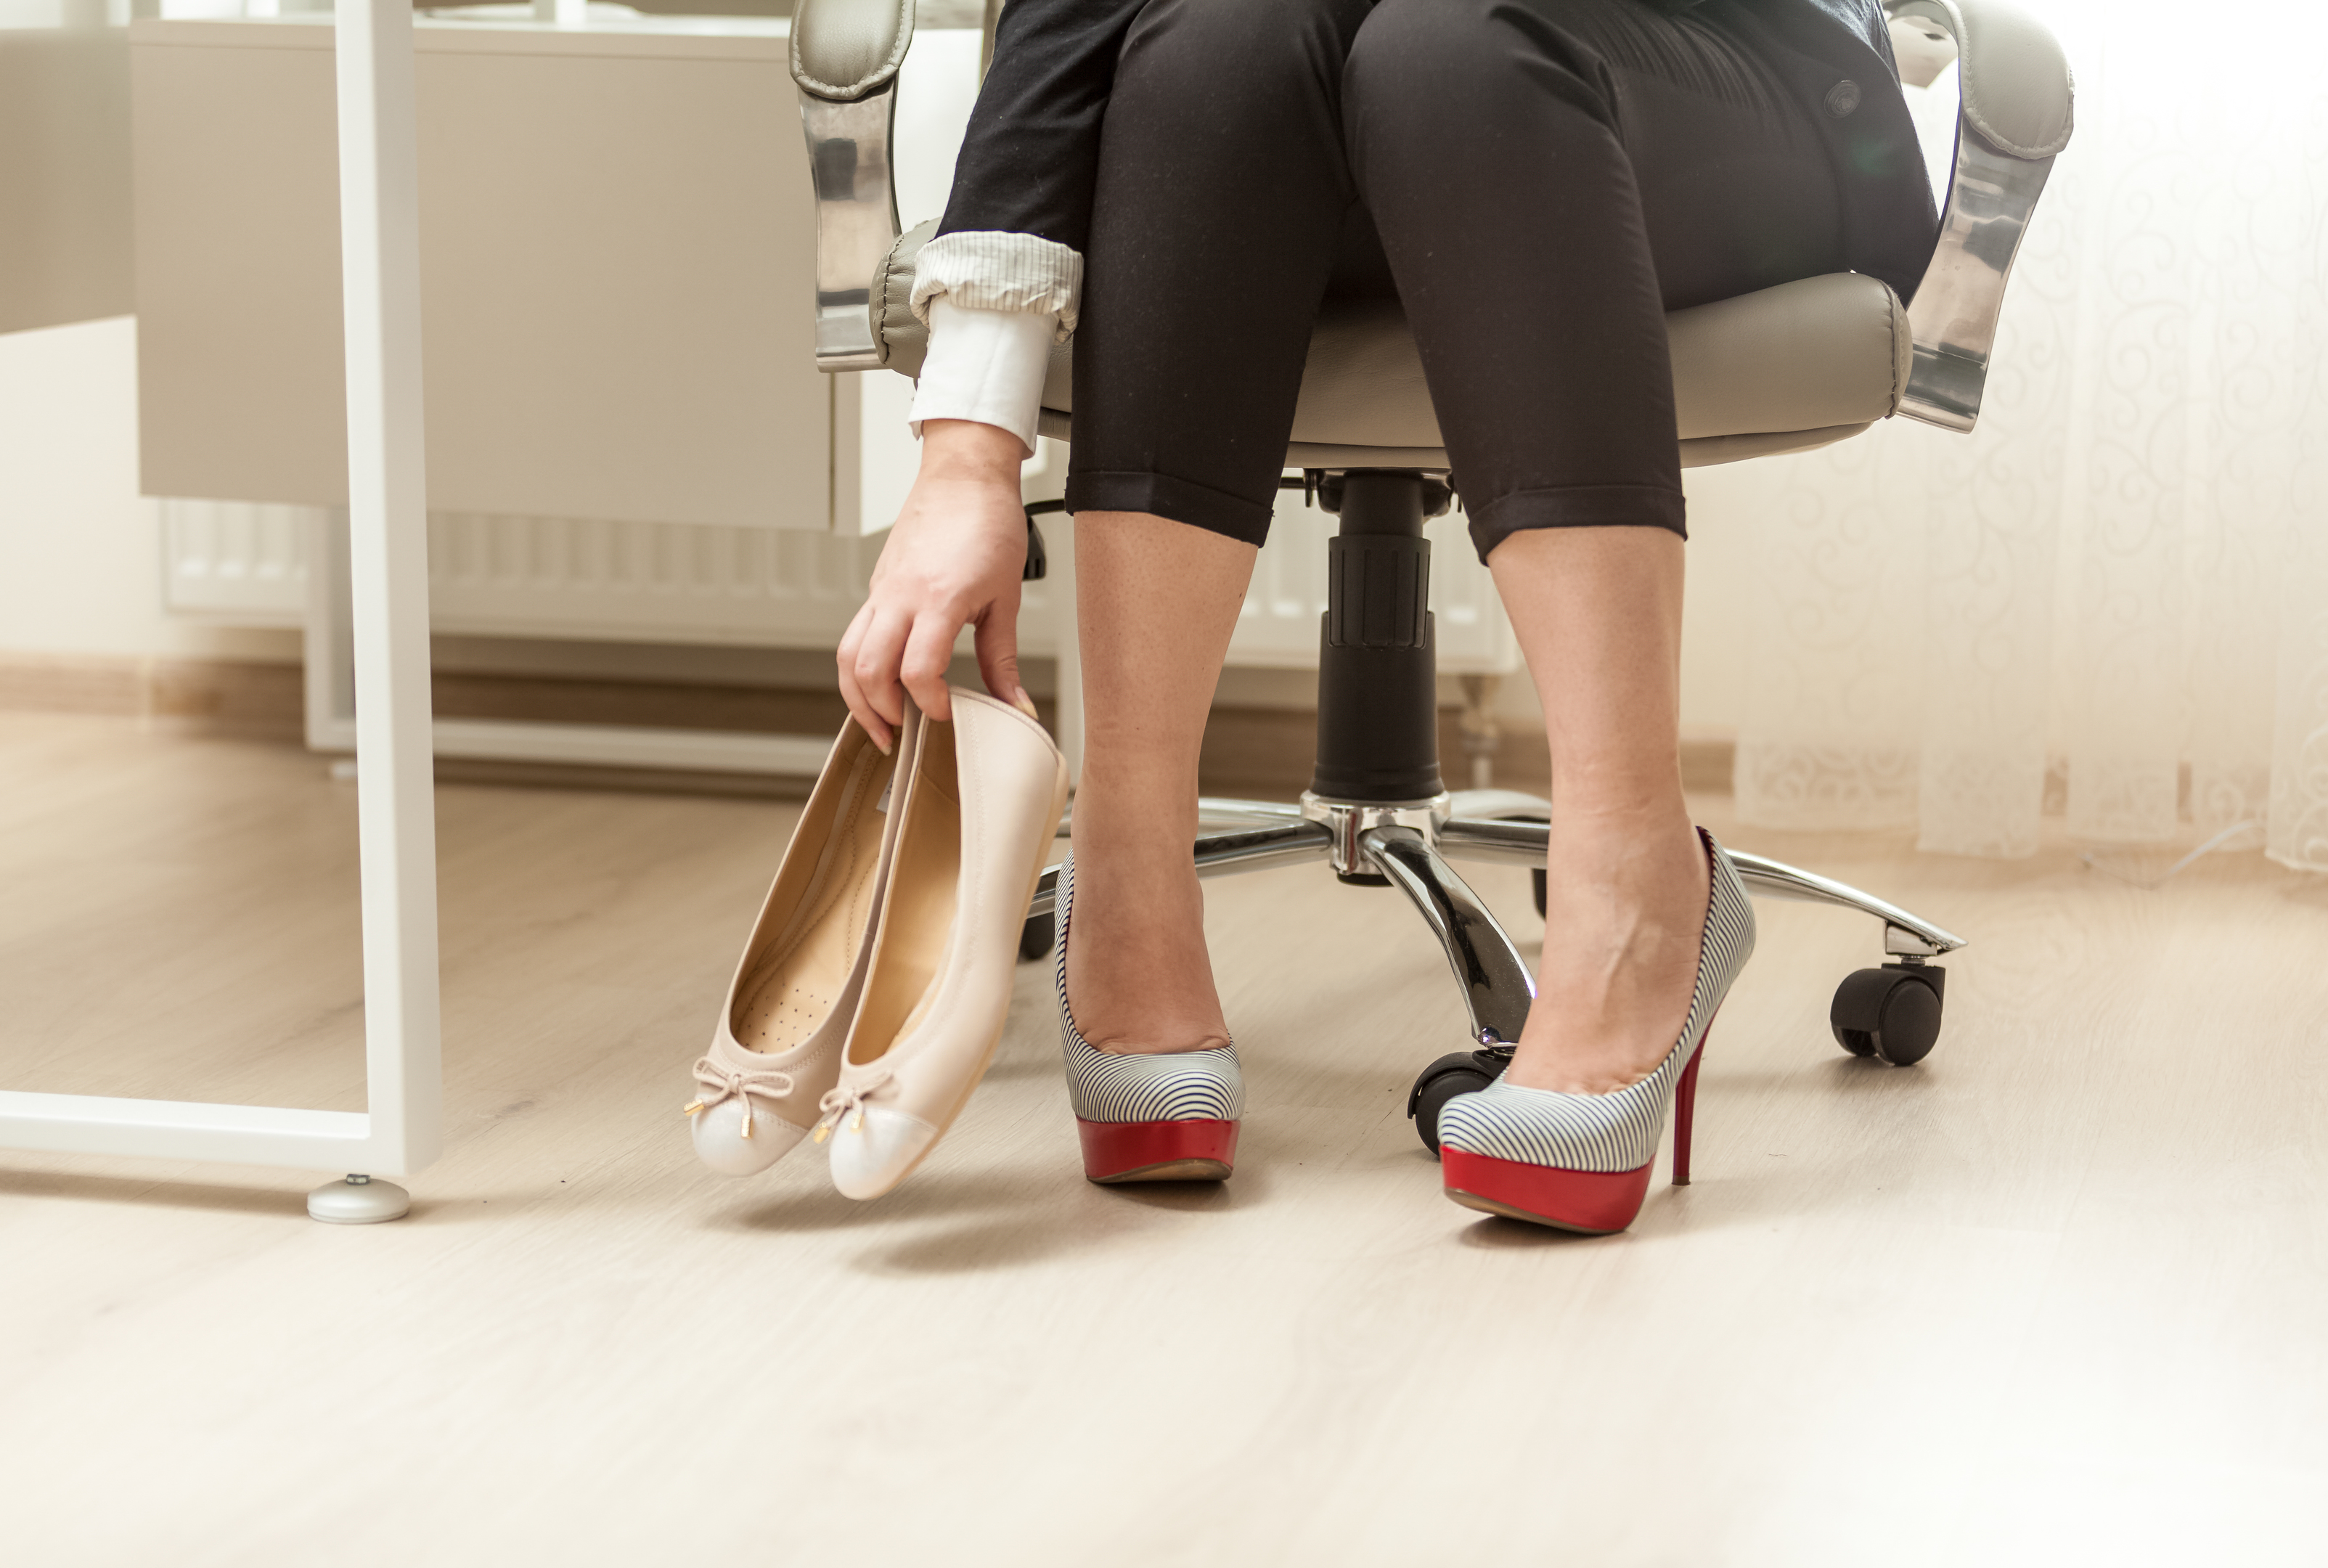 Workplace rules for women have been labelled 'outdated' and 'sexist' (iStock)